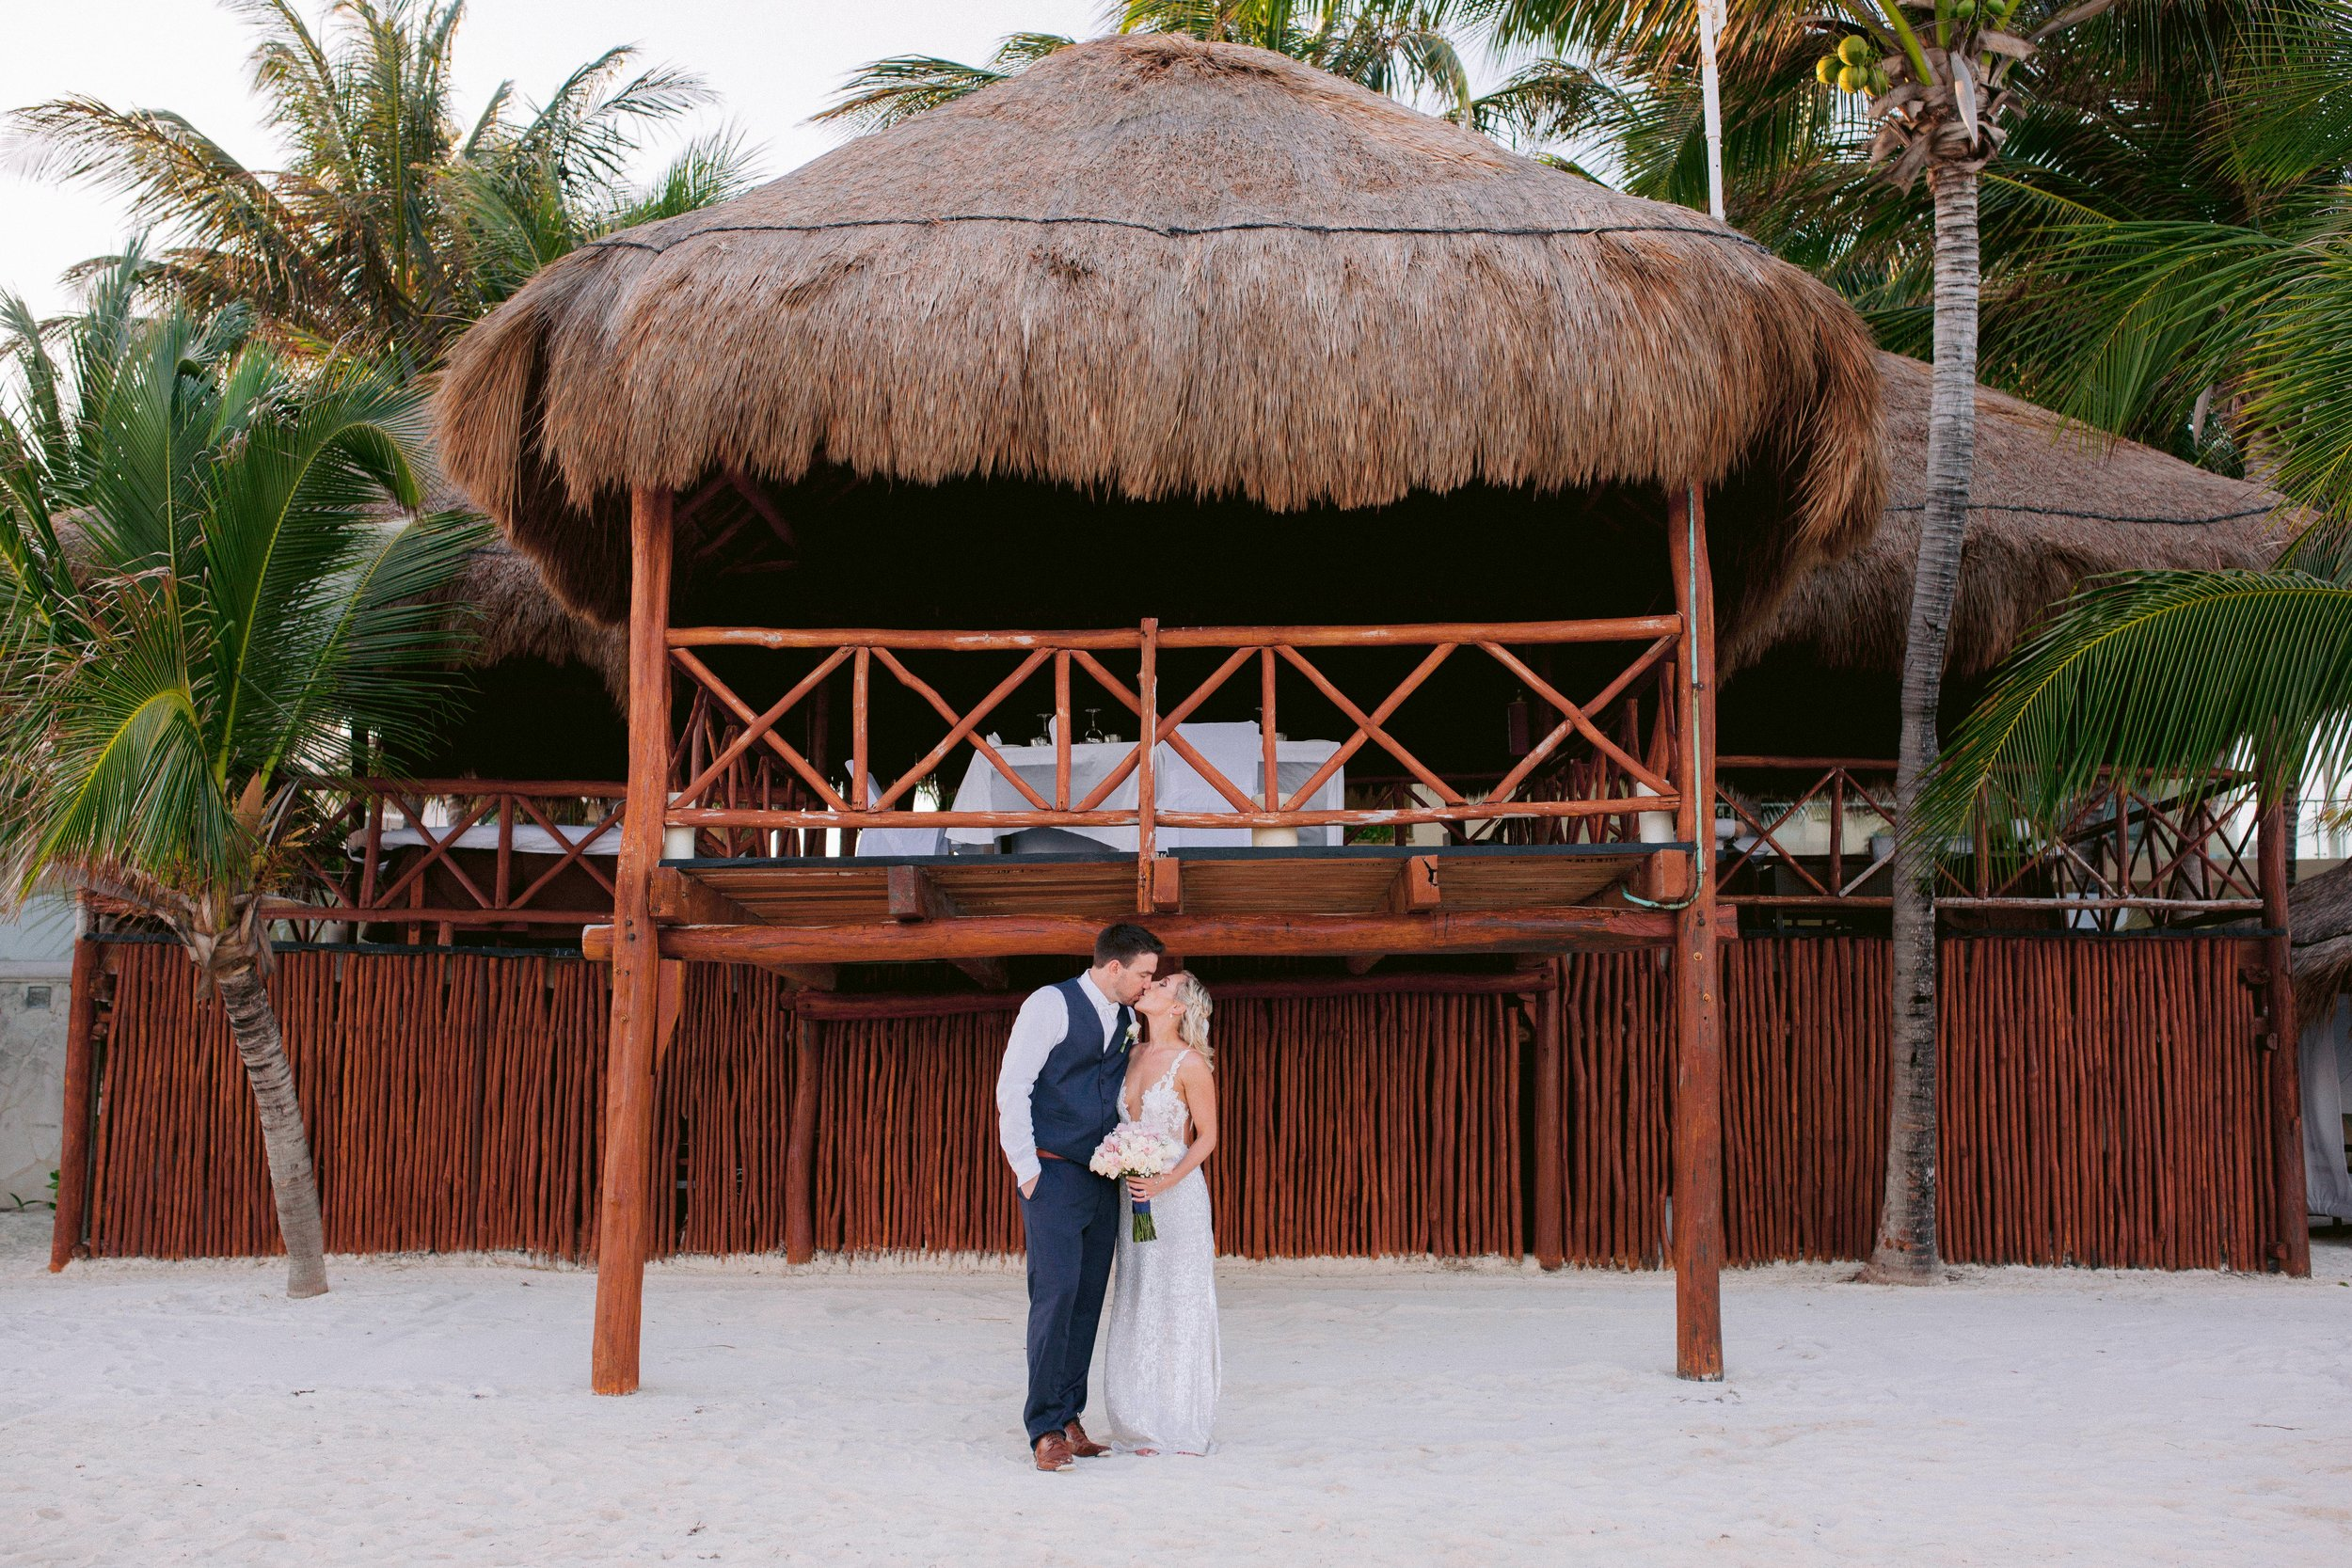 Kim_Jeff_Cancun Wedding_Portraits_Kurtz_Orpia (113 of 178).jpg